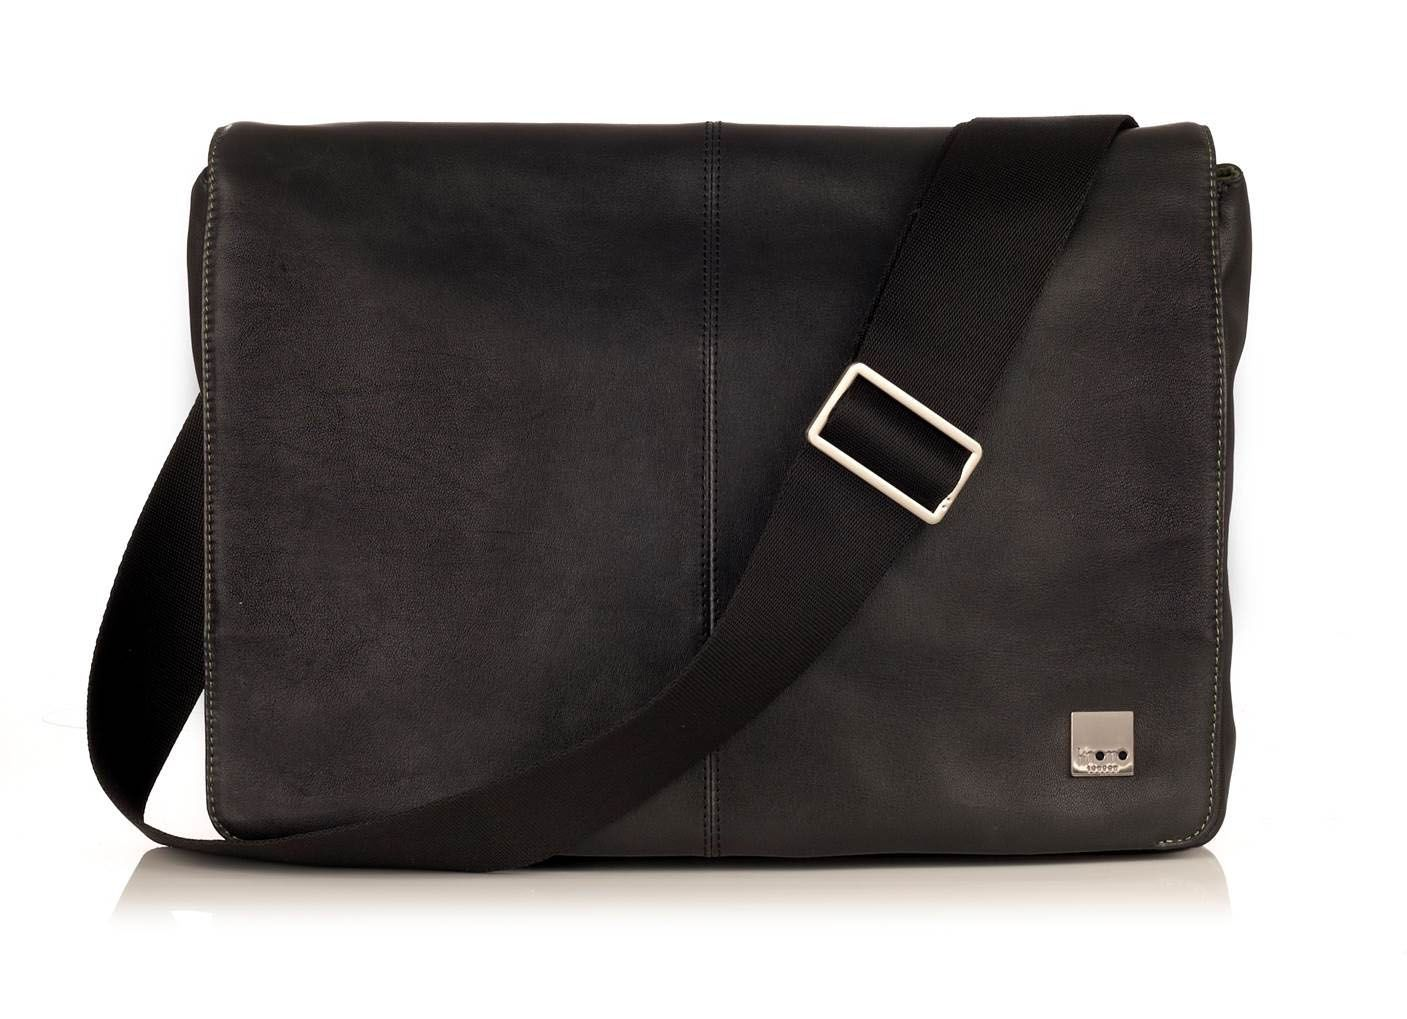 Kinsale black messenger bag